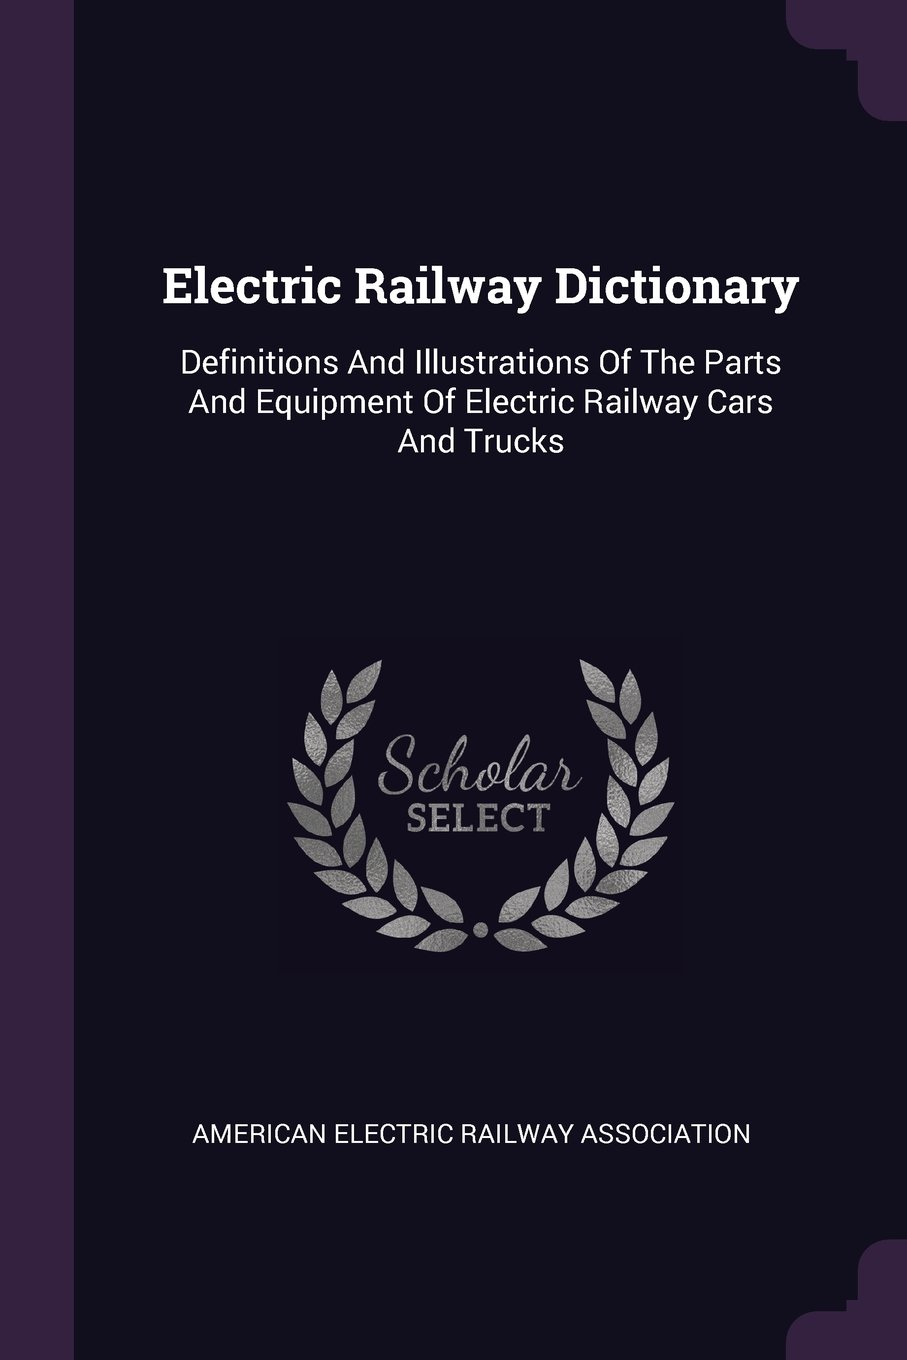 Download Electric Railway Dictionary: Definitions And Illustrations Of The Parts And Equipment Of Electric Railway Cars And Trucks ebook